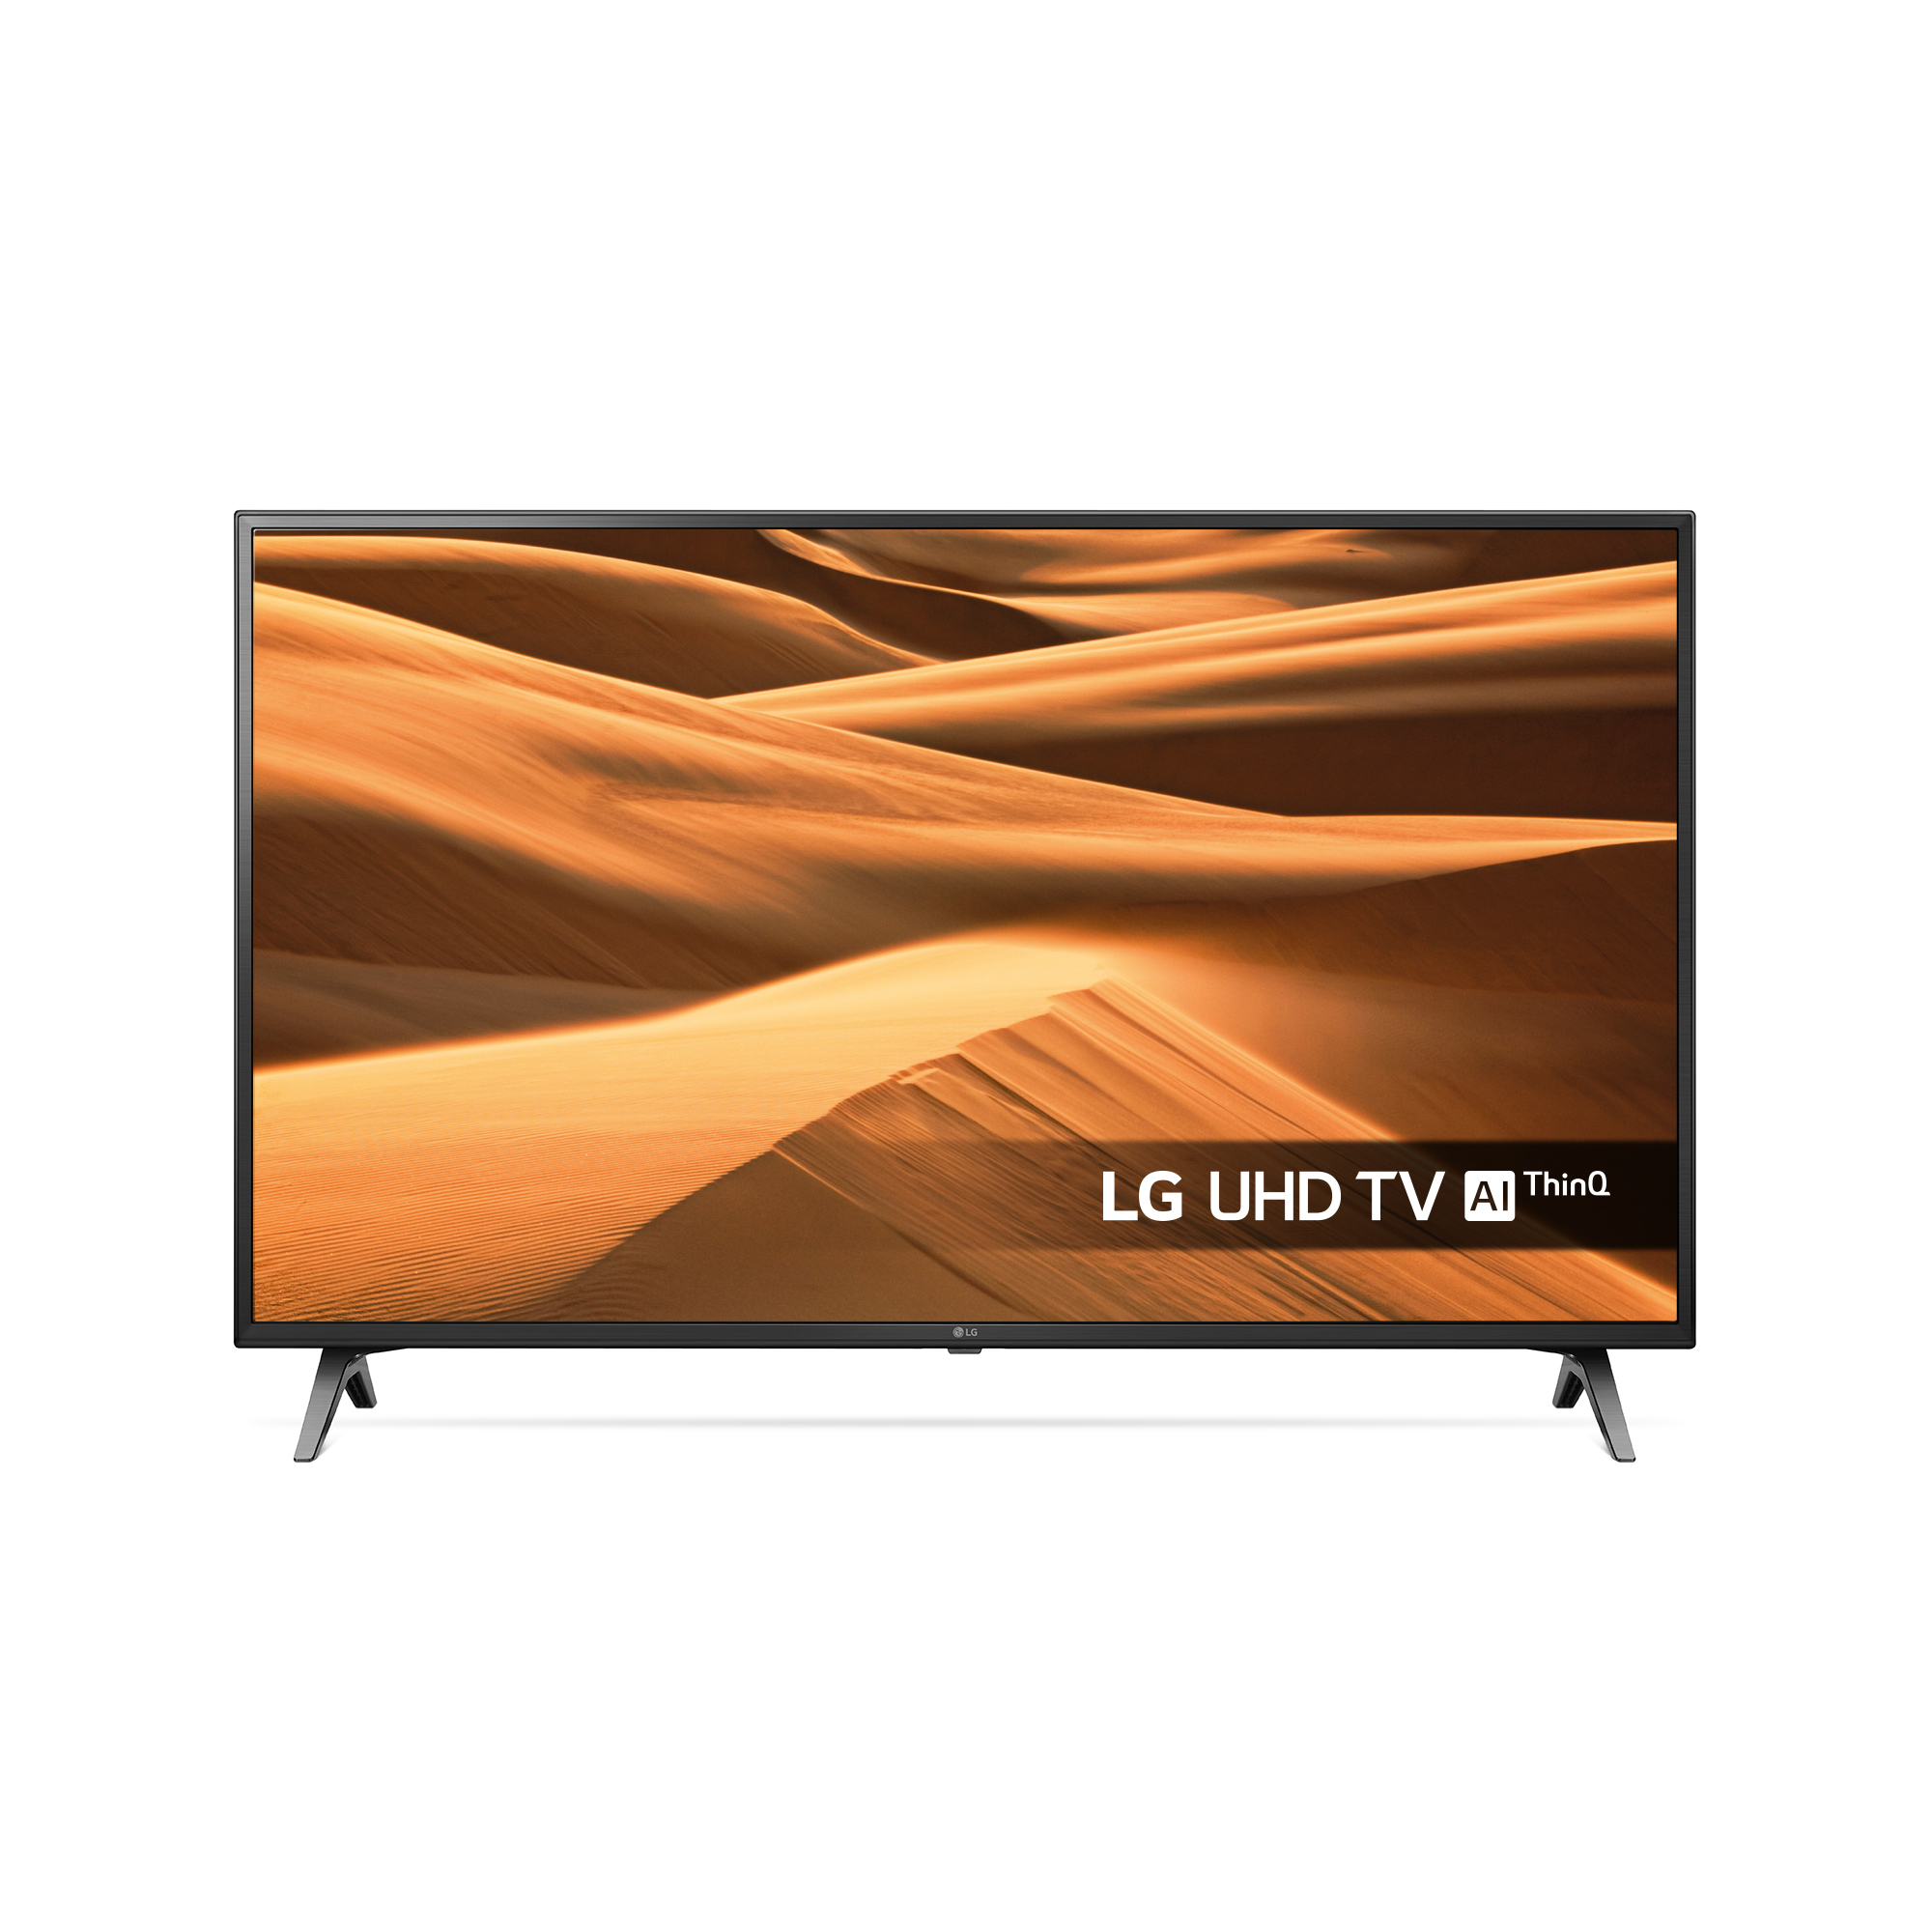 "LG 55UM7100PLB TV 139.7 cm (55"") 4K Ultra HD Smart TV Wi-Fi Black"